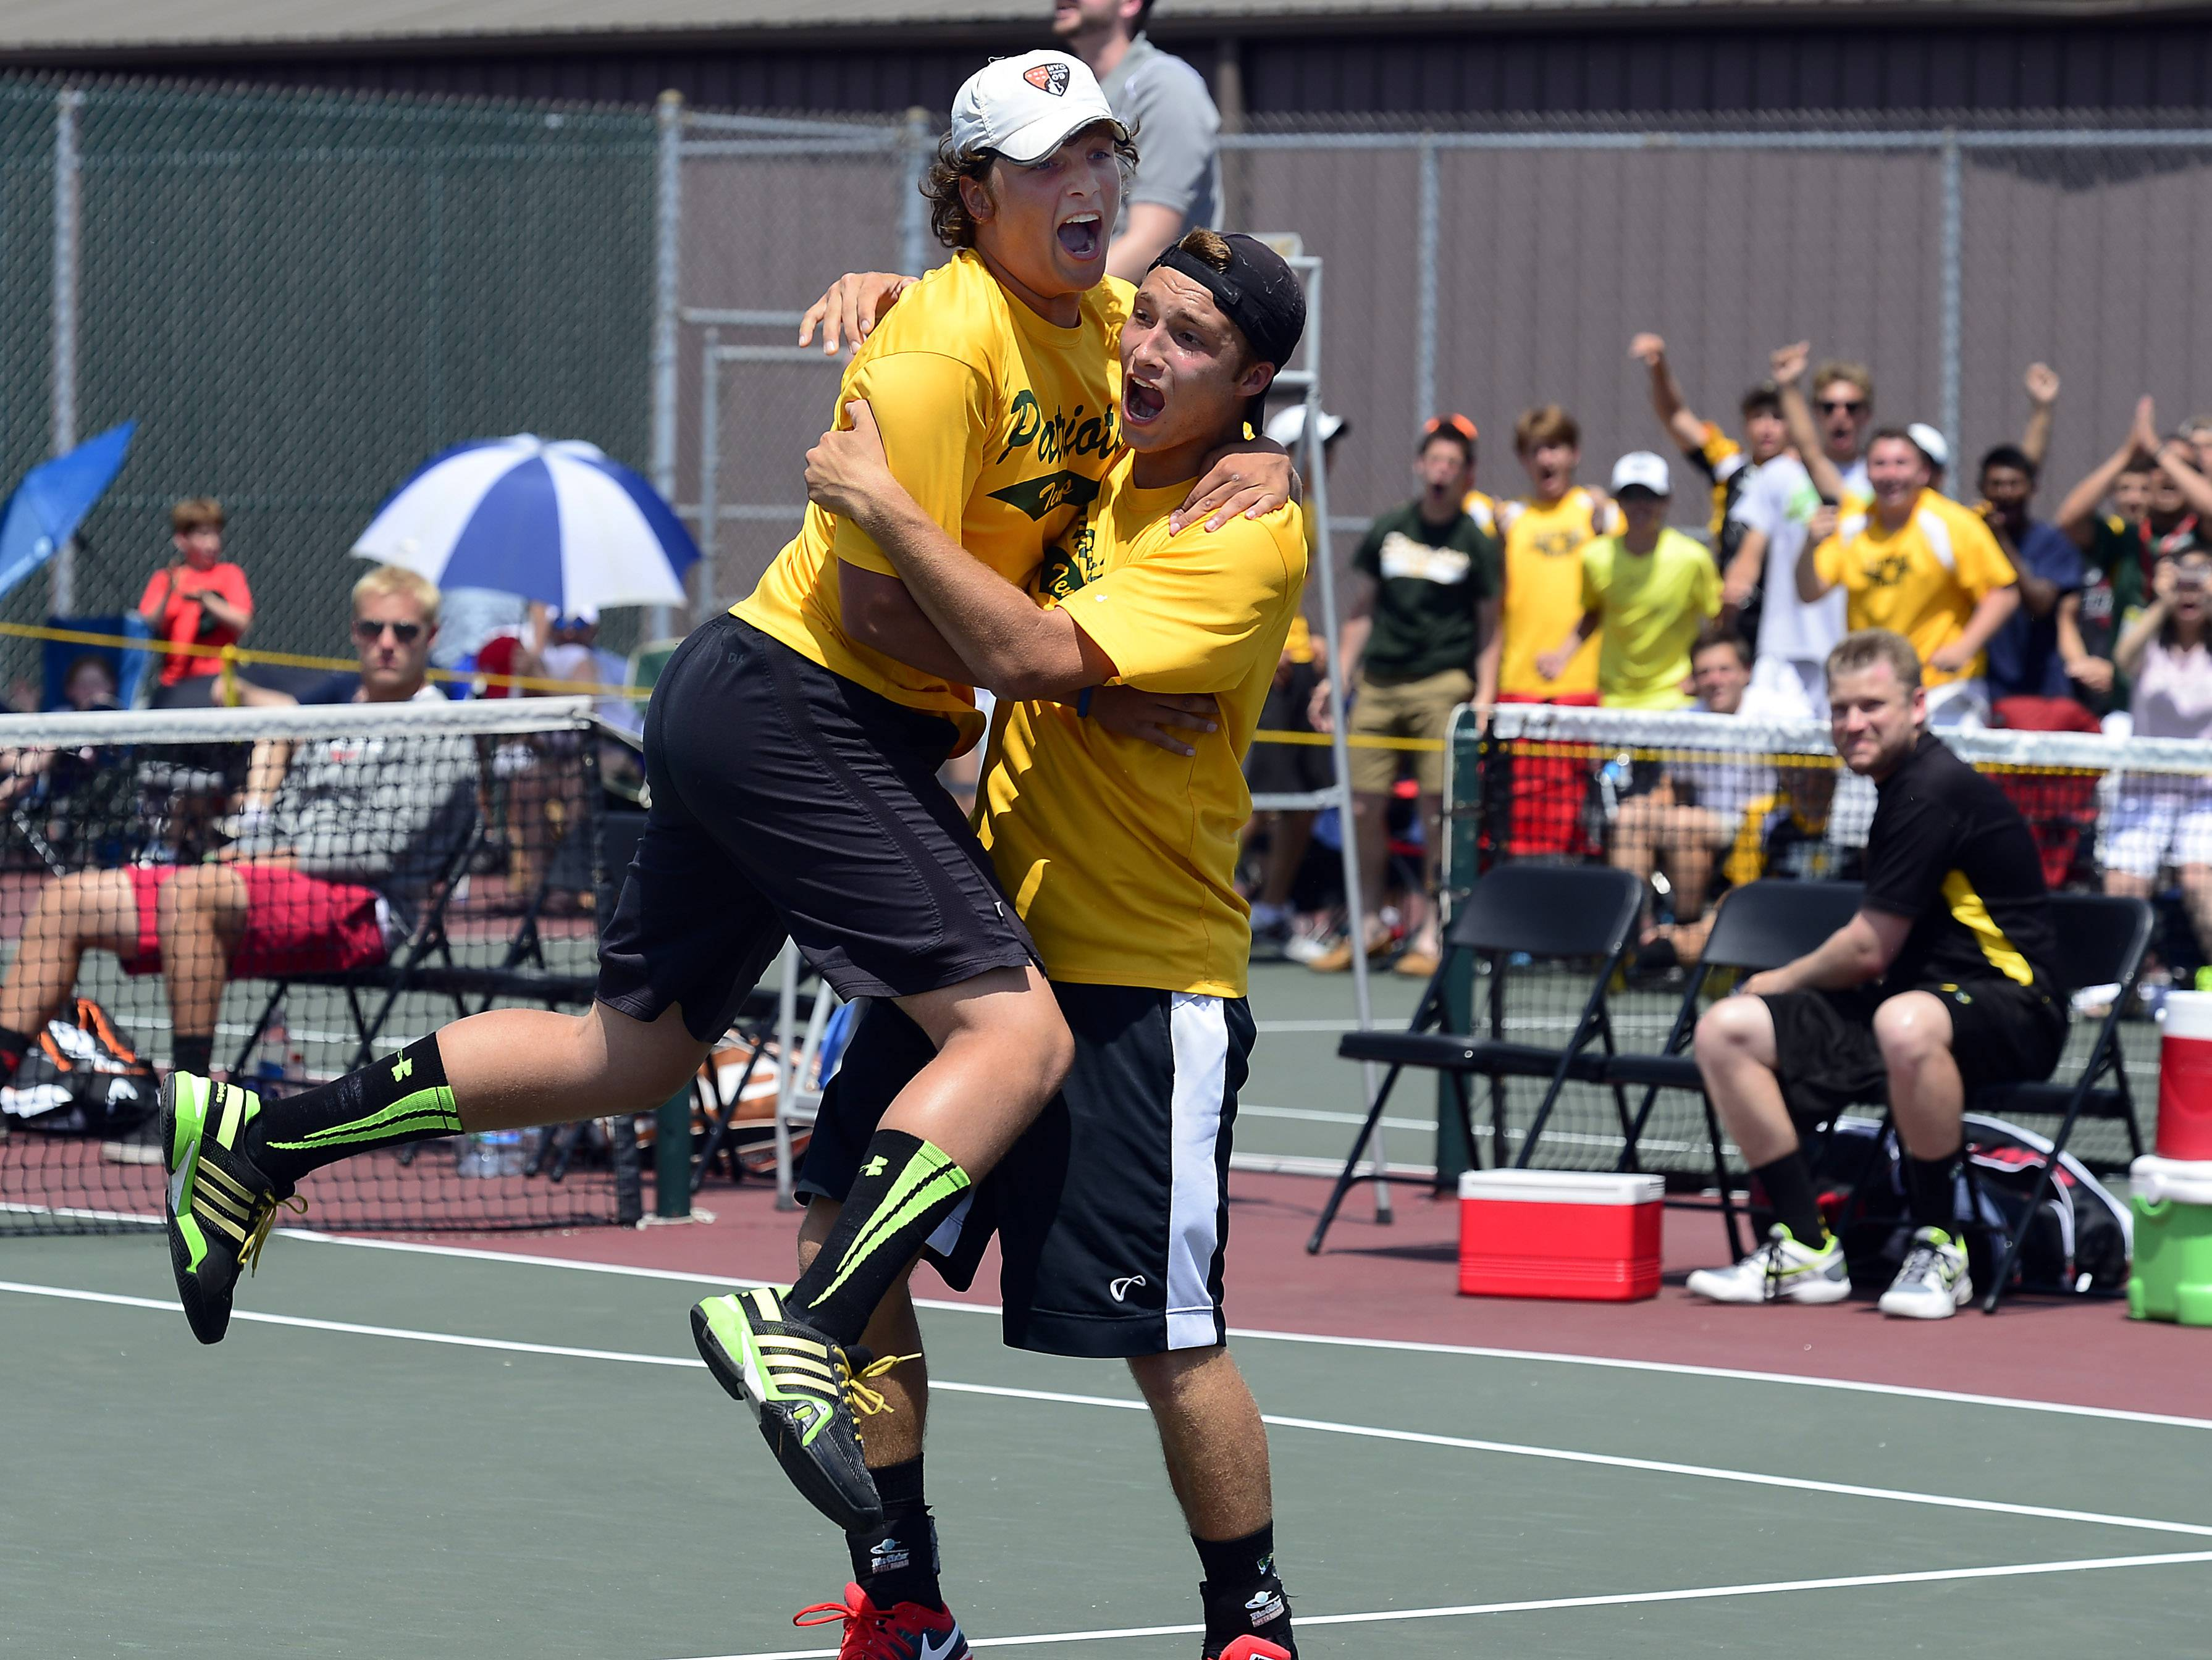 Stevenson's Andrew Komarov jumps into the arms of his partner Colin Harvey after winning the #1 doubles state title matchup against Hinsdale Central at Hersey High School on Saturday.